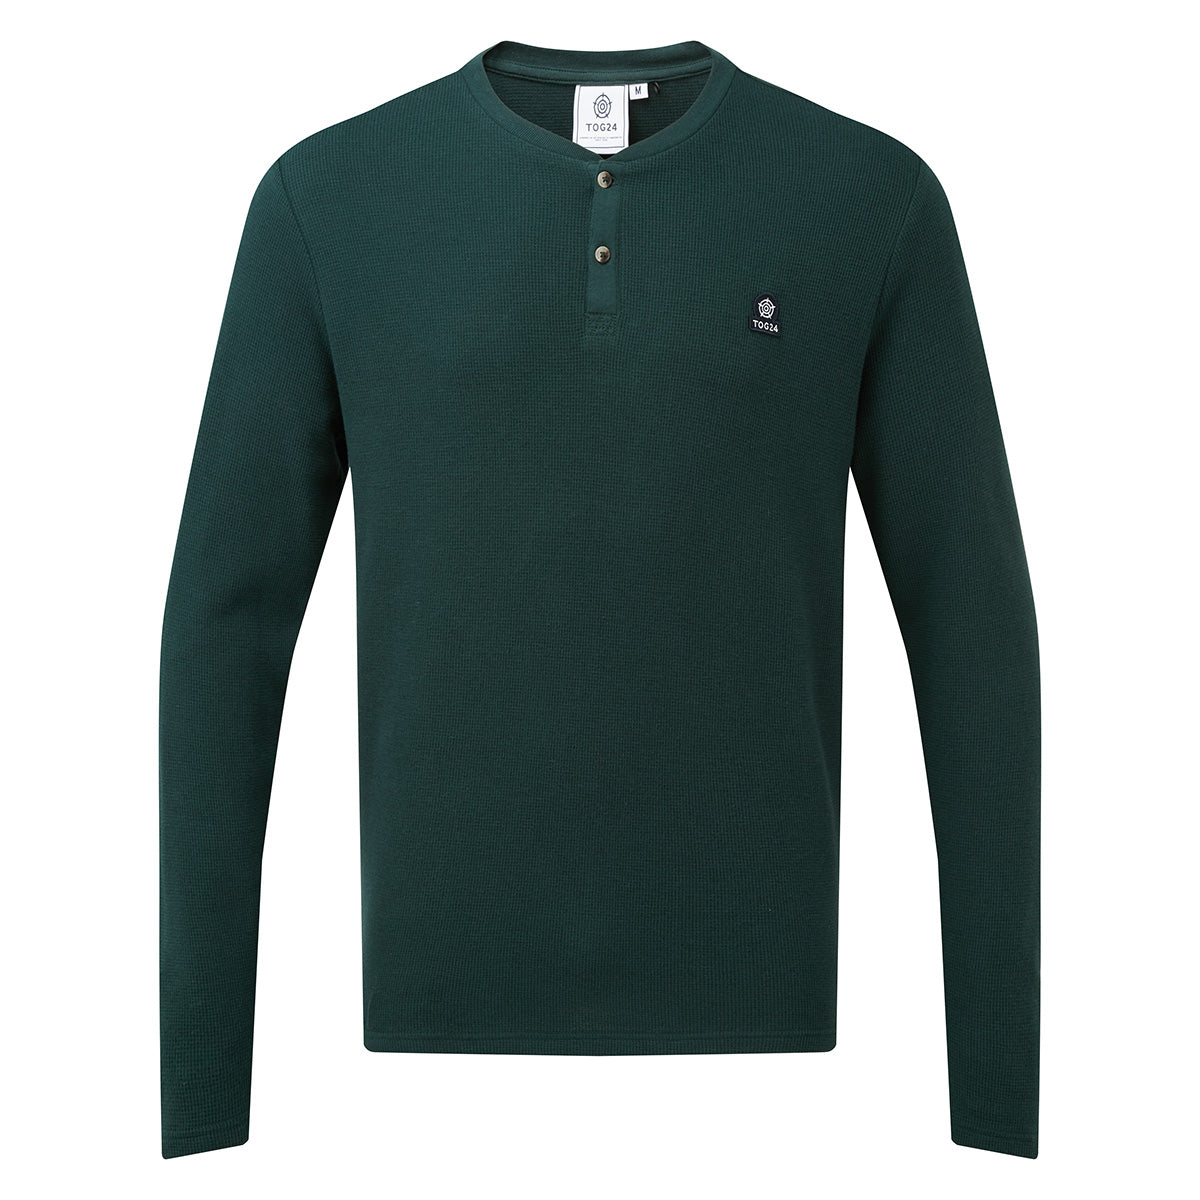 Drewton Mens Grandad Collar T-Shirt - Dark Teal image 4